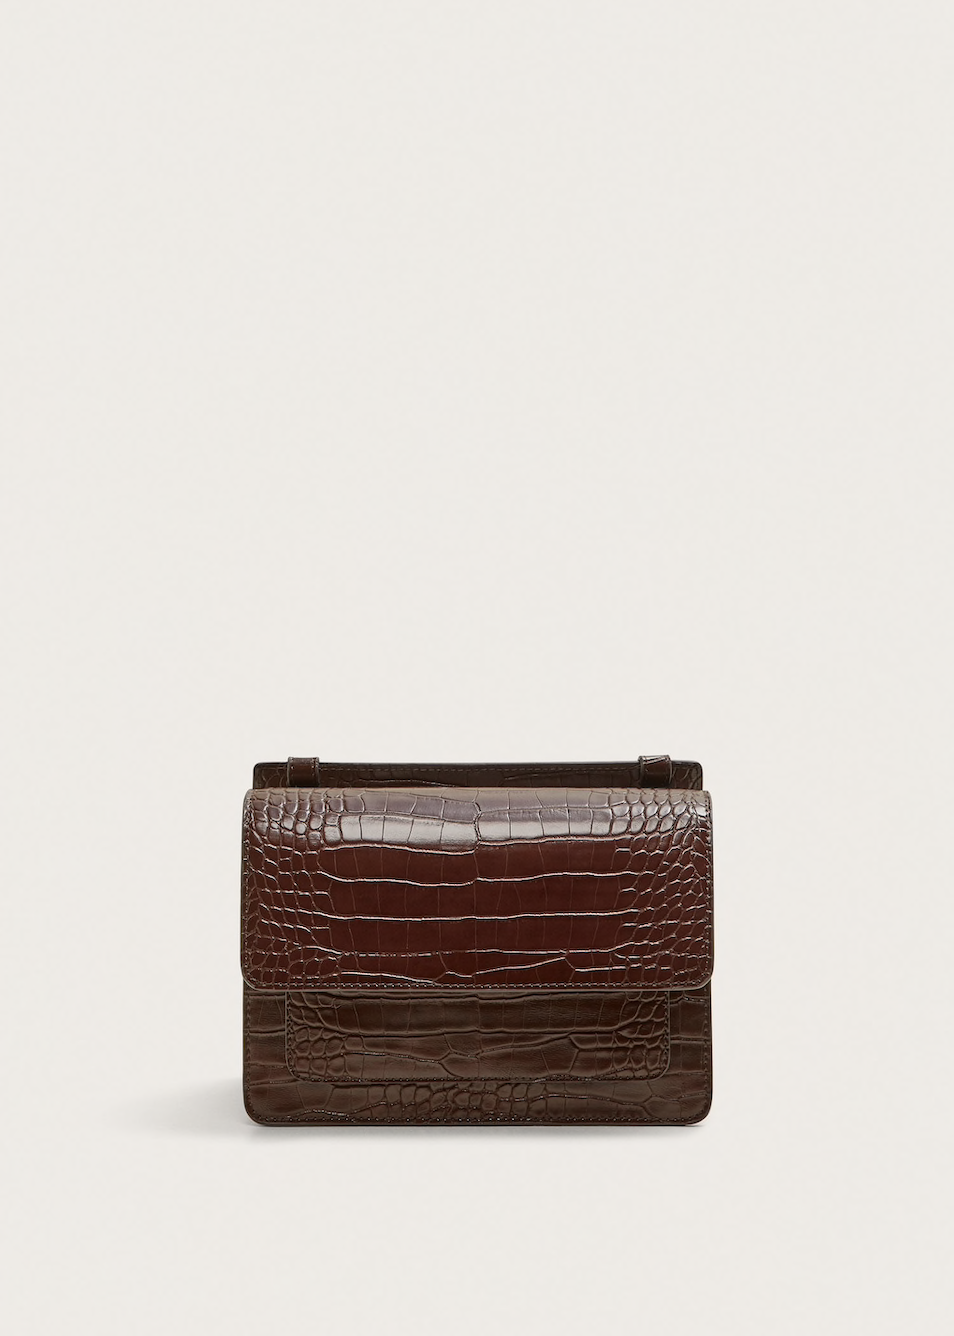 Violeta by MANGO bag, $97.56